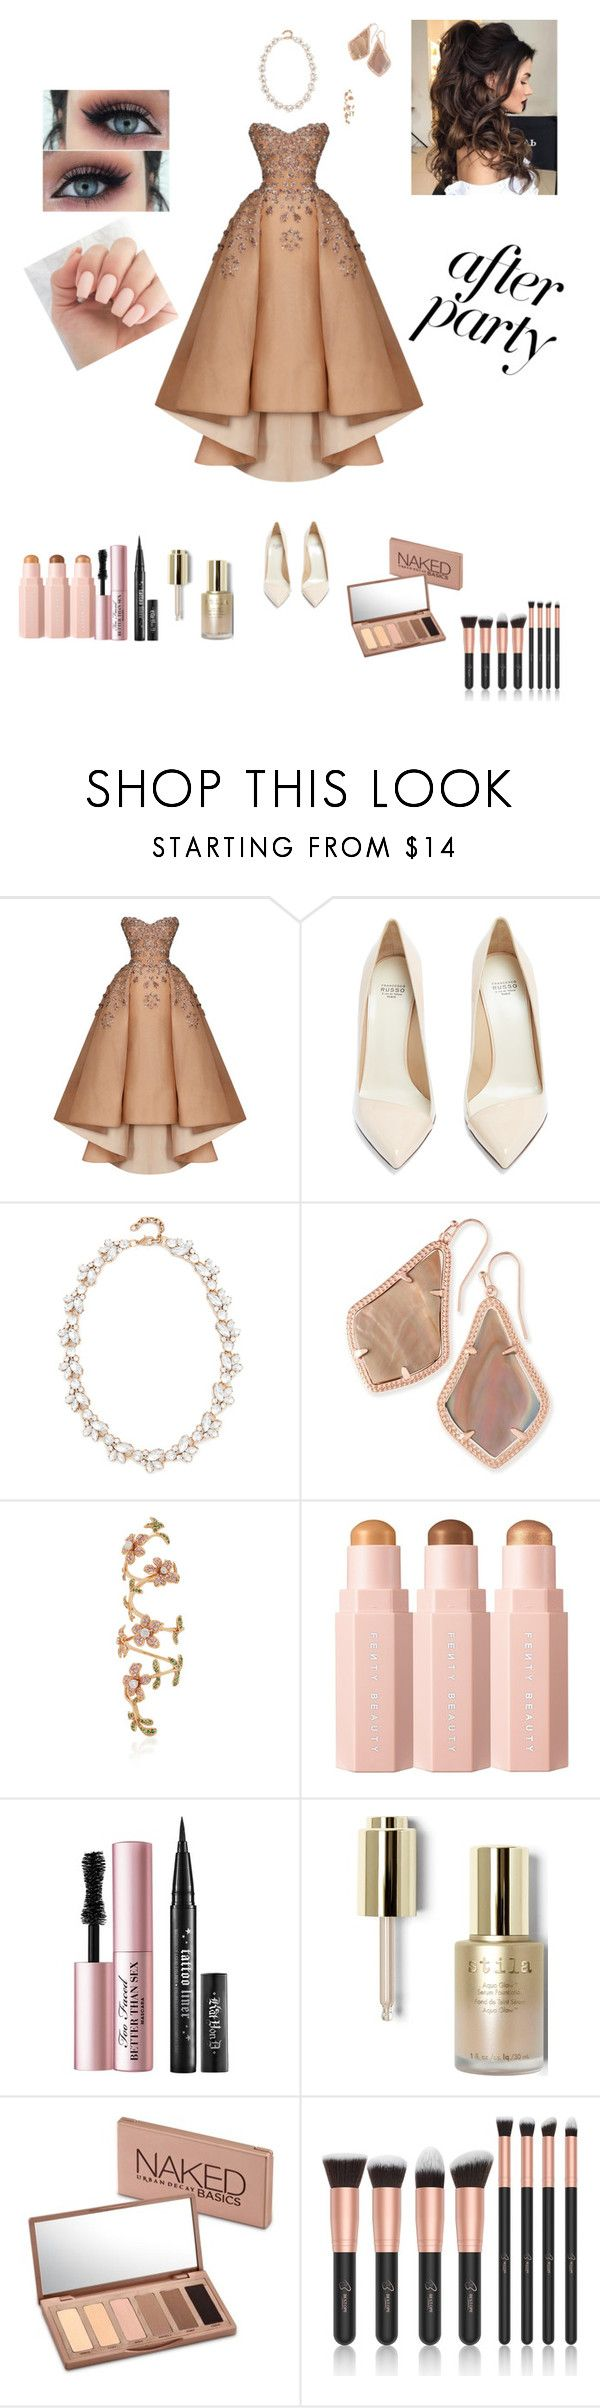 """After party"" by glitterqueenz ❤ liked on Polyvore featuring Maison Yeya, Francesco Russo, Stella + Ruby, Kendra Scott, Stéfère, Too Faced Cosmetics, Stila and Urban Decay"